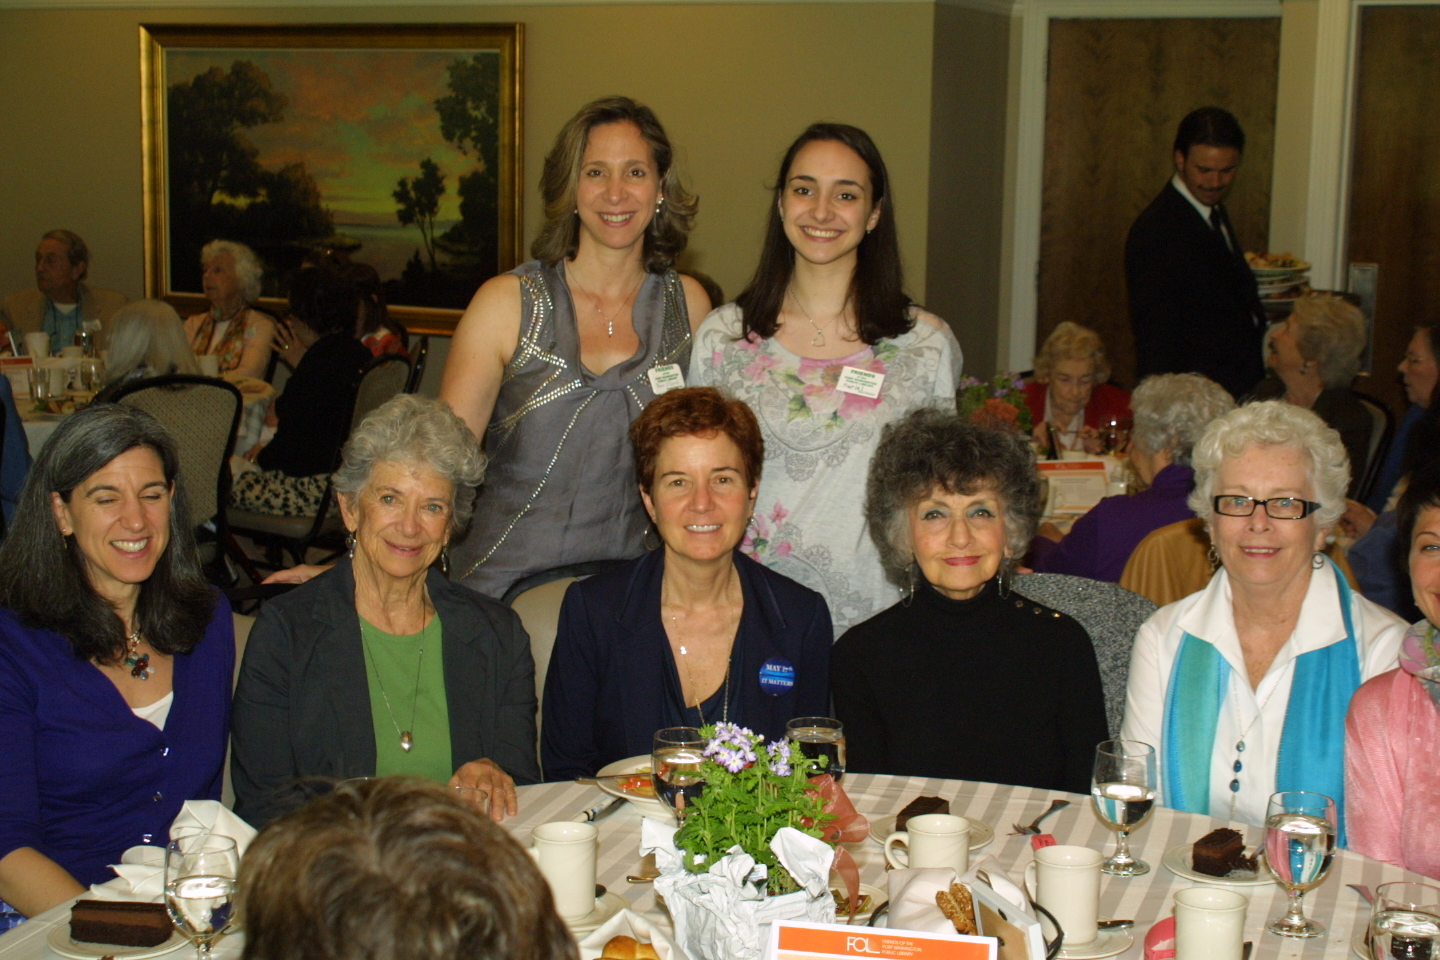 A table of mothers and daughters enjoyed the luncheon and literary event